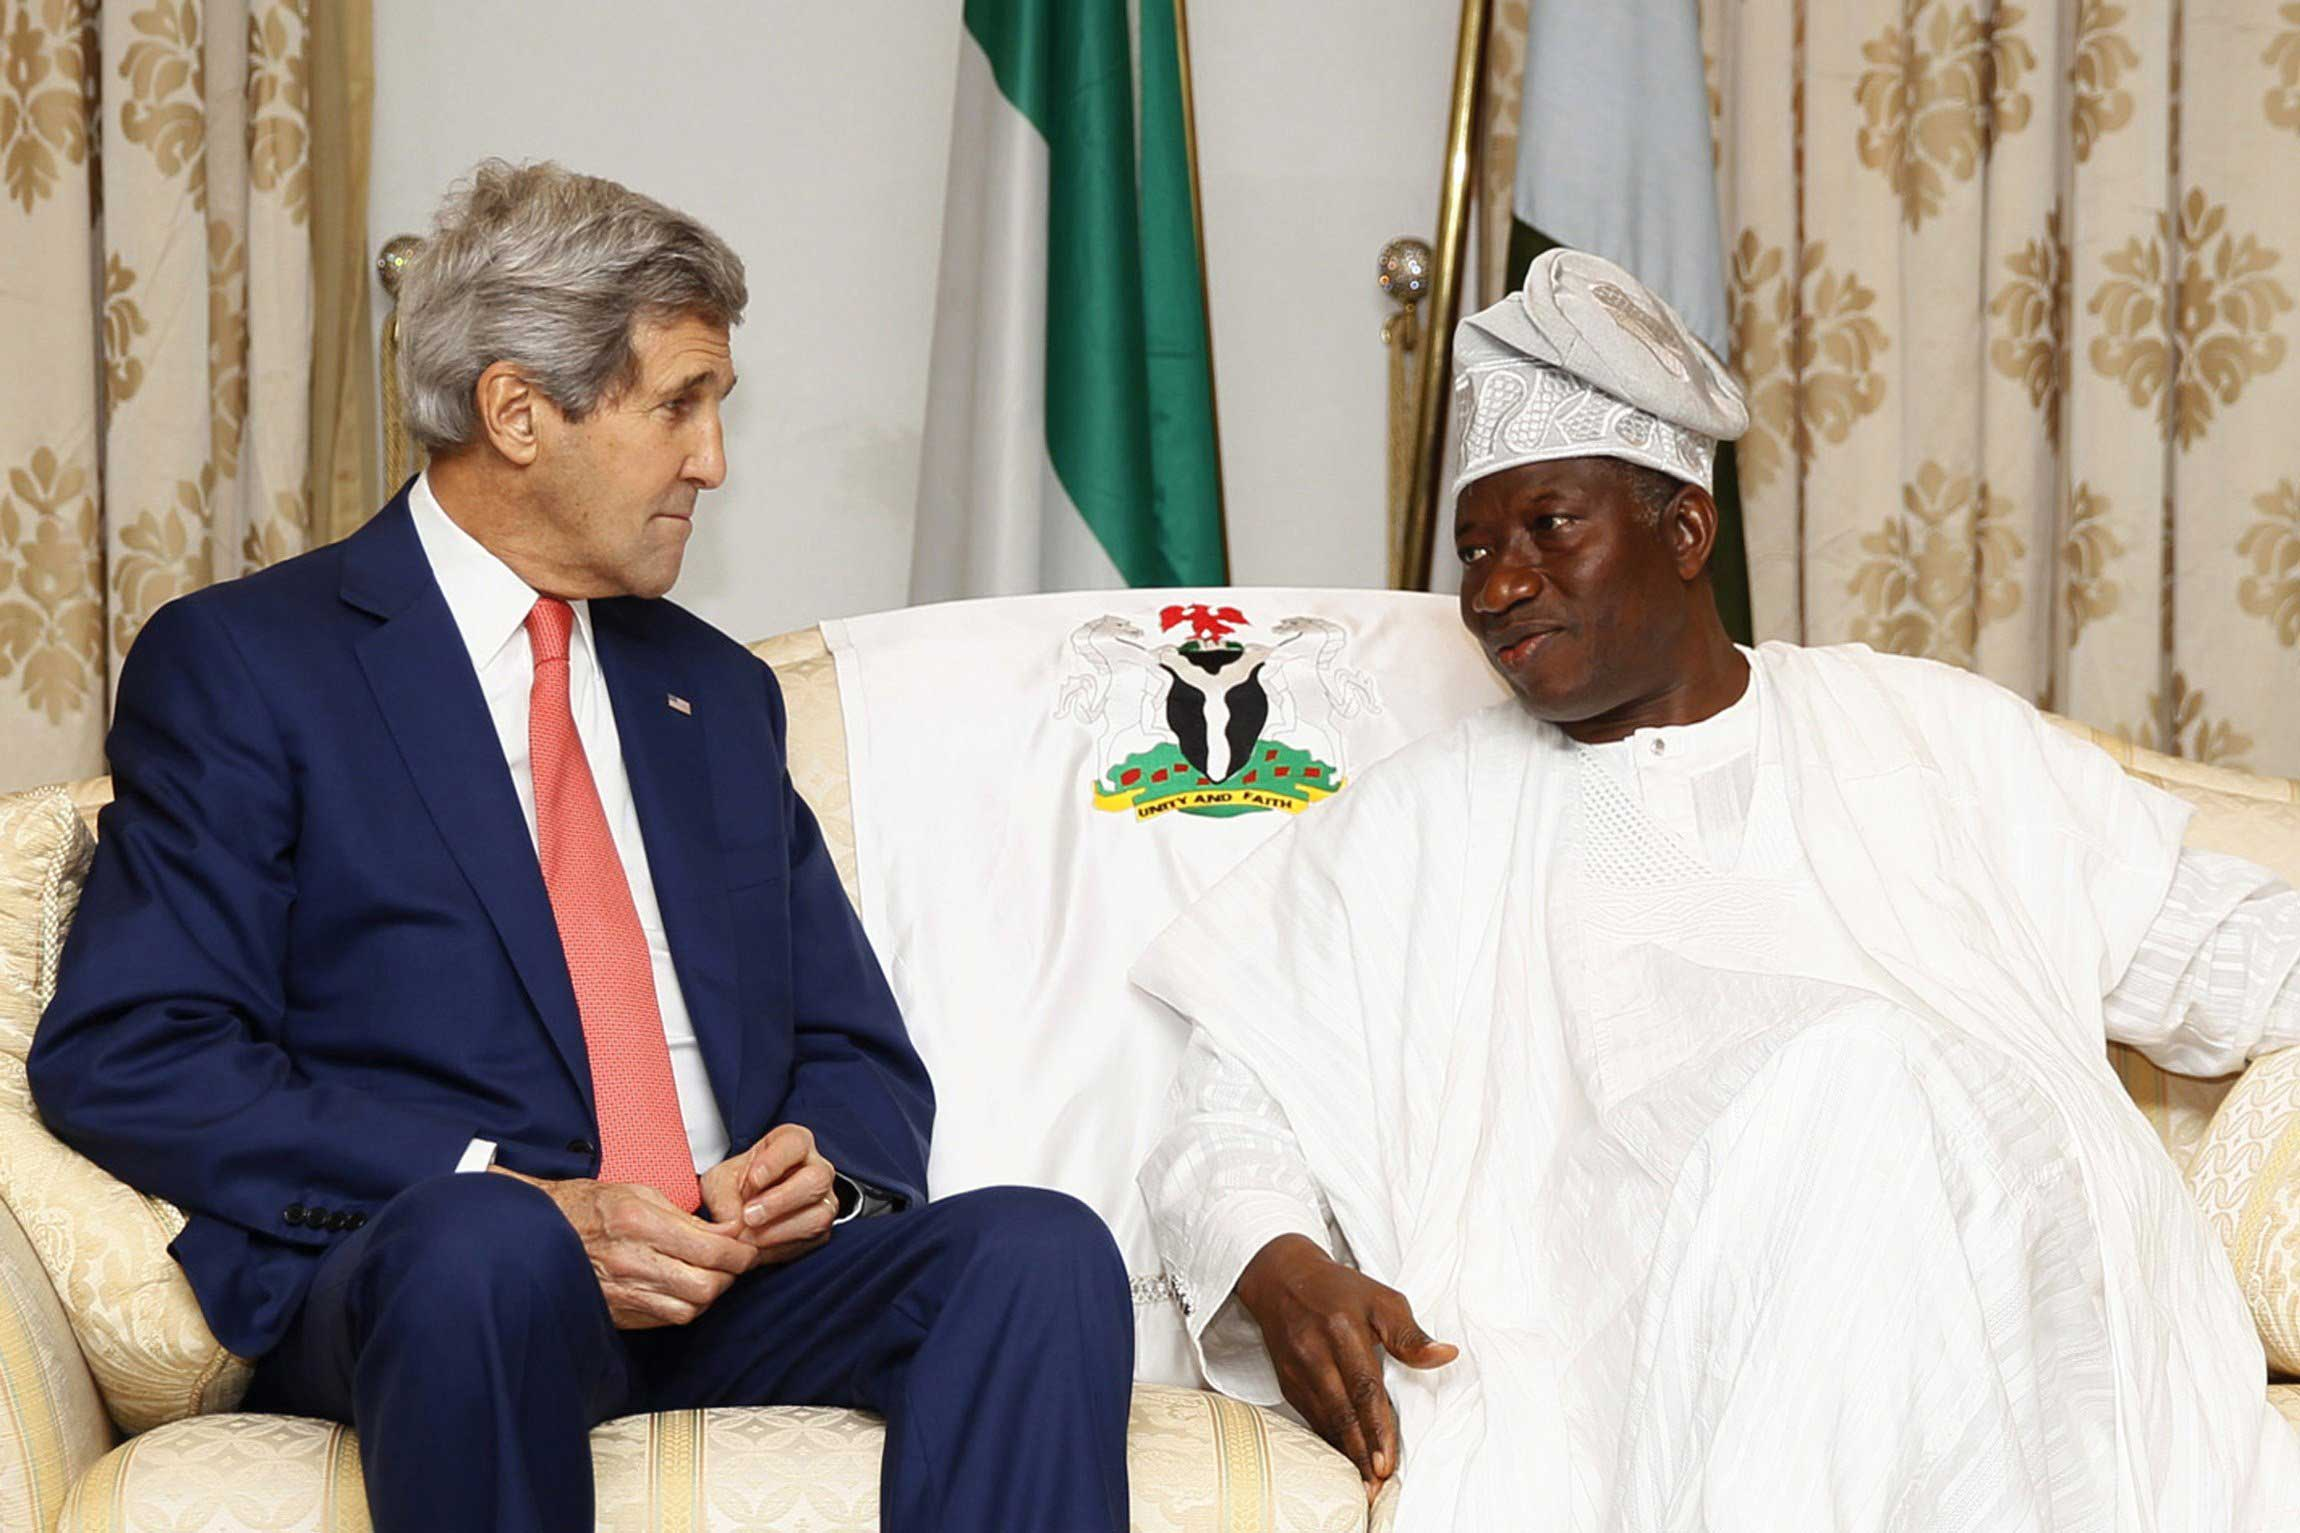 US Secretary of State John Kerry (L) meets with Nigeria's President Goodluck Jonathan to discuss peaceful elections at the State House in Lagos, Nigeria on Jan. 25, 2015.